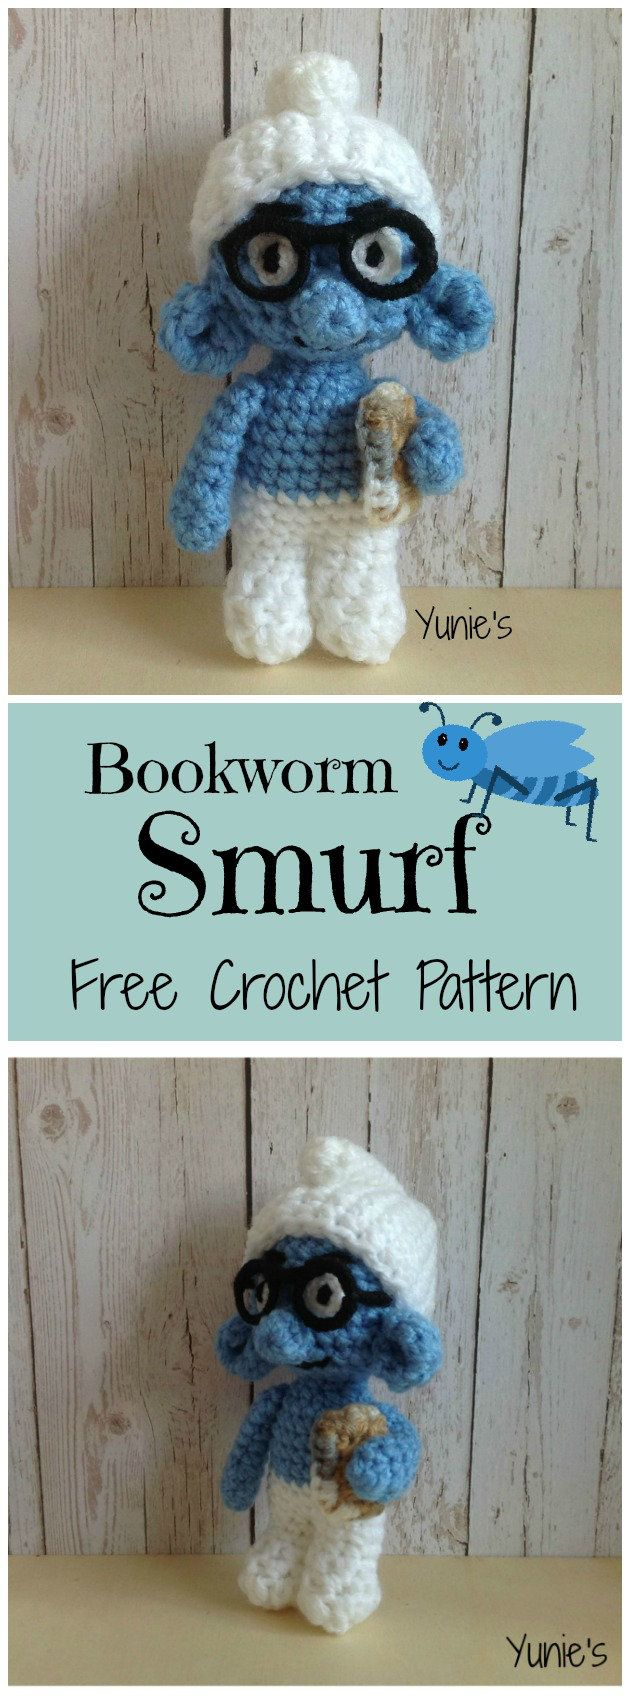 50 best smurf images on pinterest knitting appliques and crocheting la la lalalala what white and blue and lives in mushroom shaped houses in the forestlinda requested a custom order of a brainy smurf and i thought it bankloansurffo Image collections